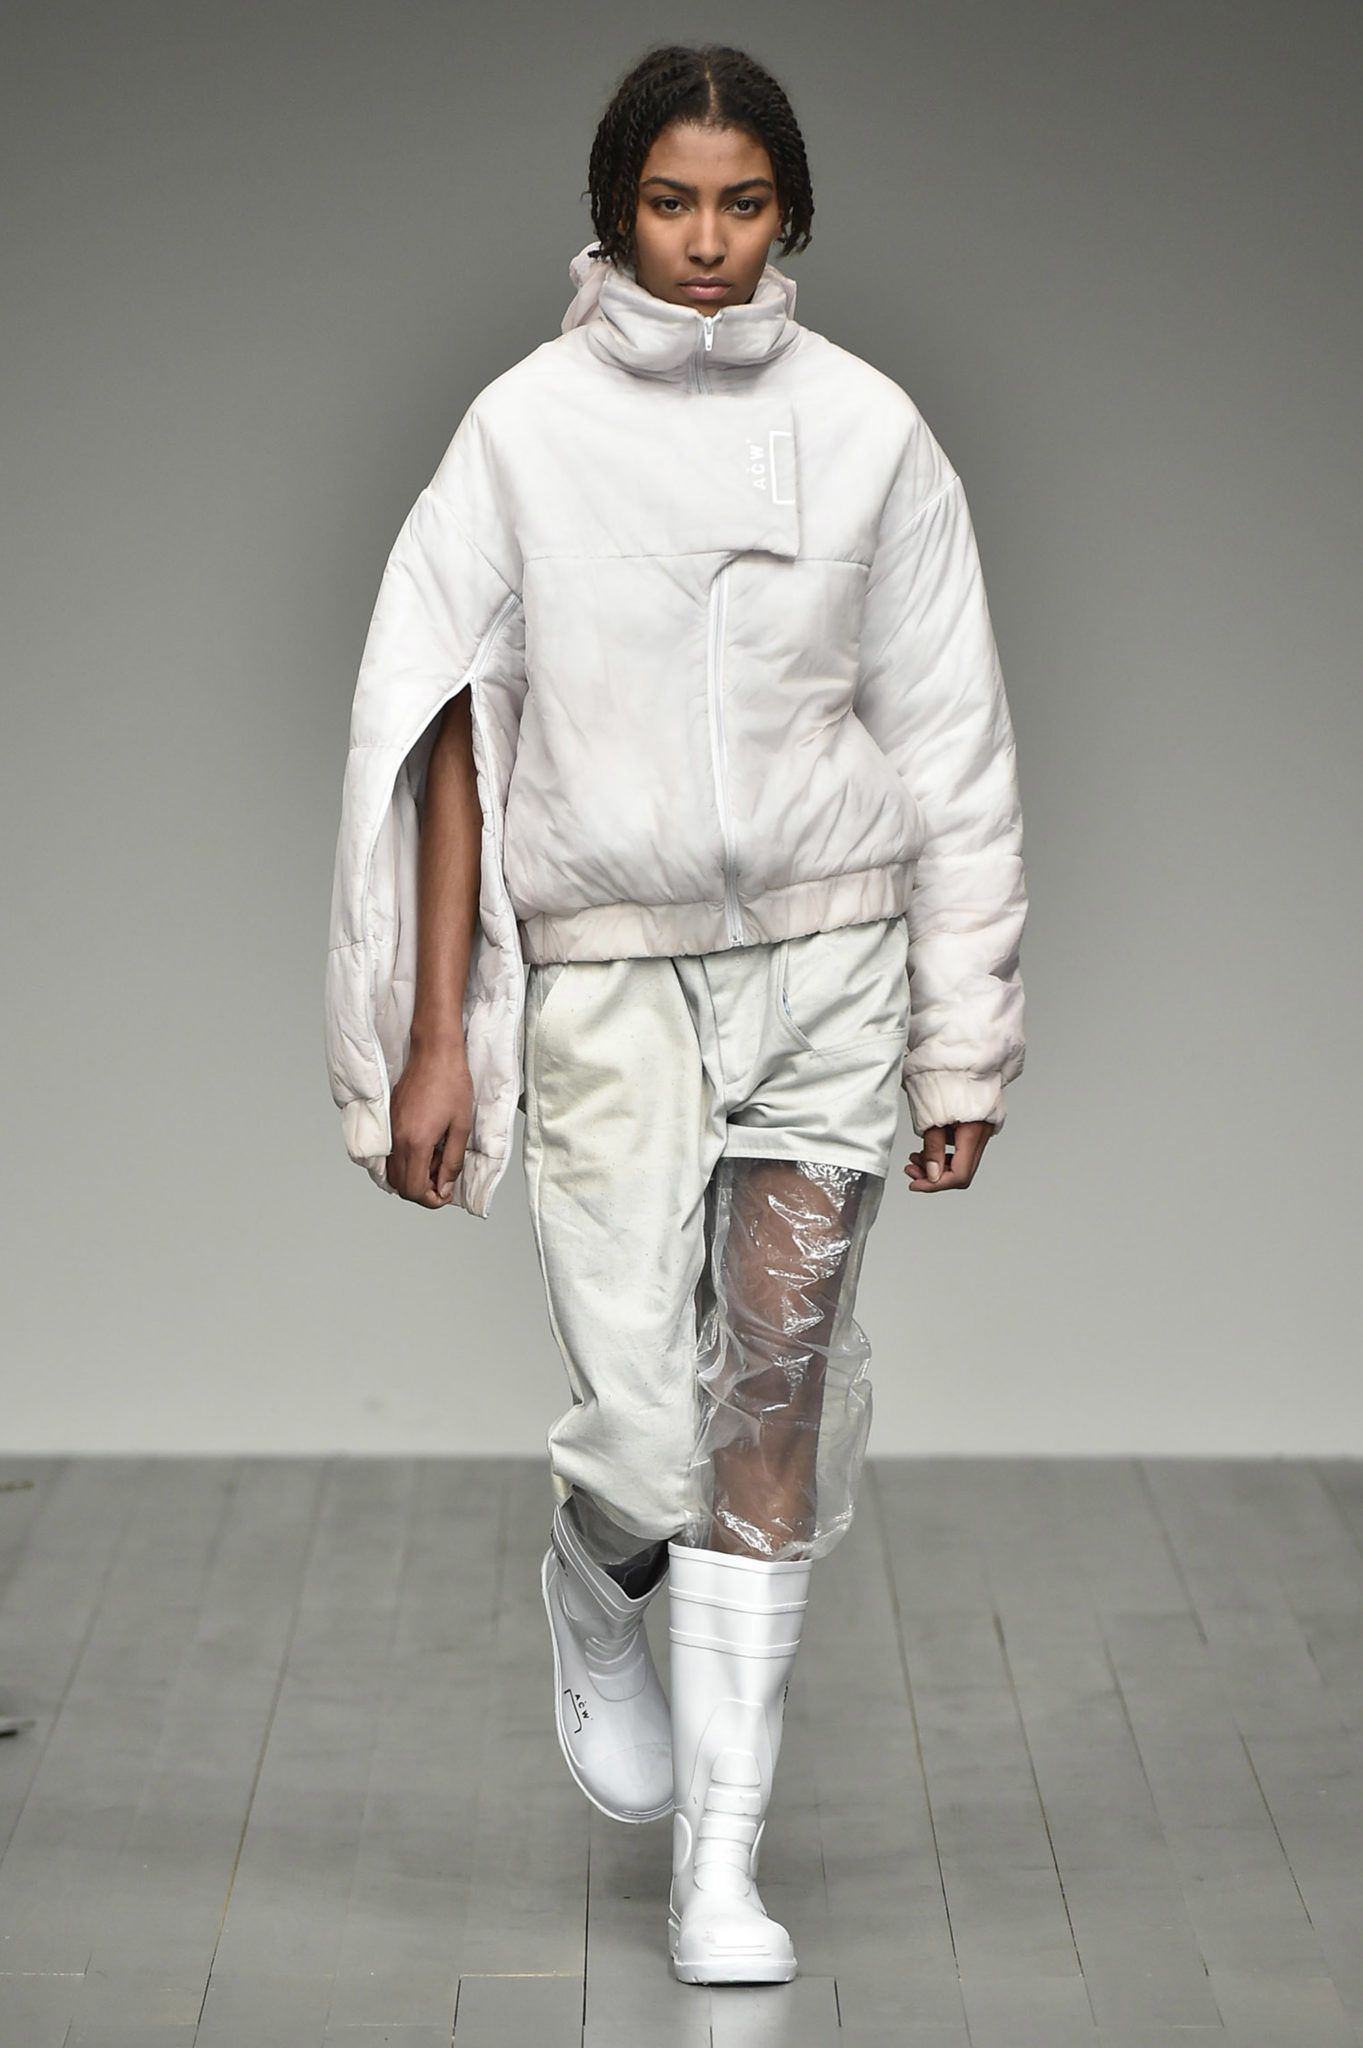 A-COLD-WALL* AW18- Presented by Samuel Ross in 2019 ...